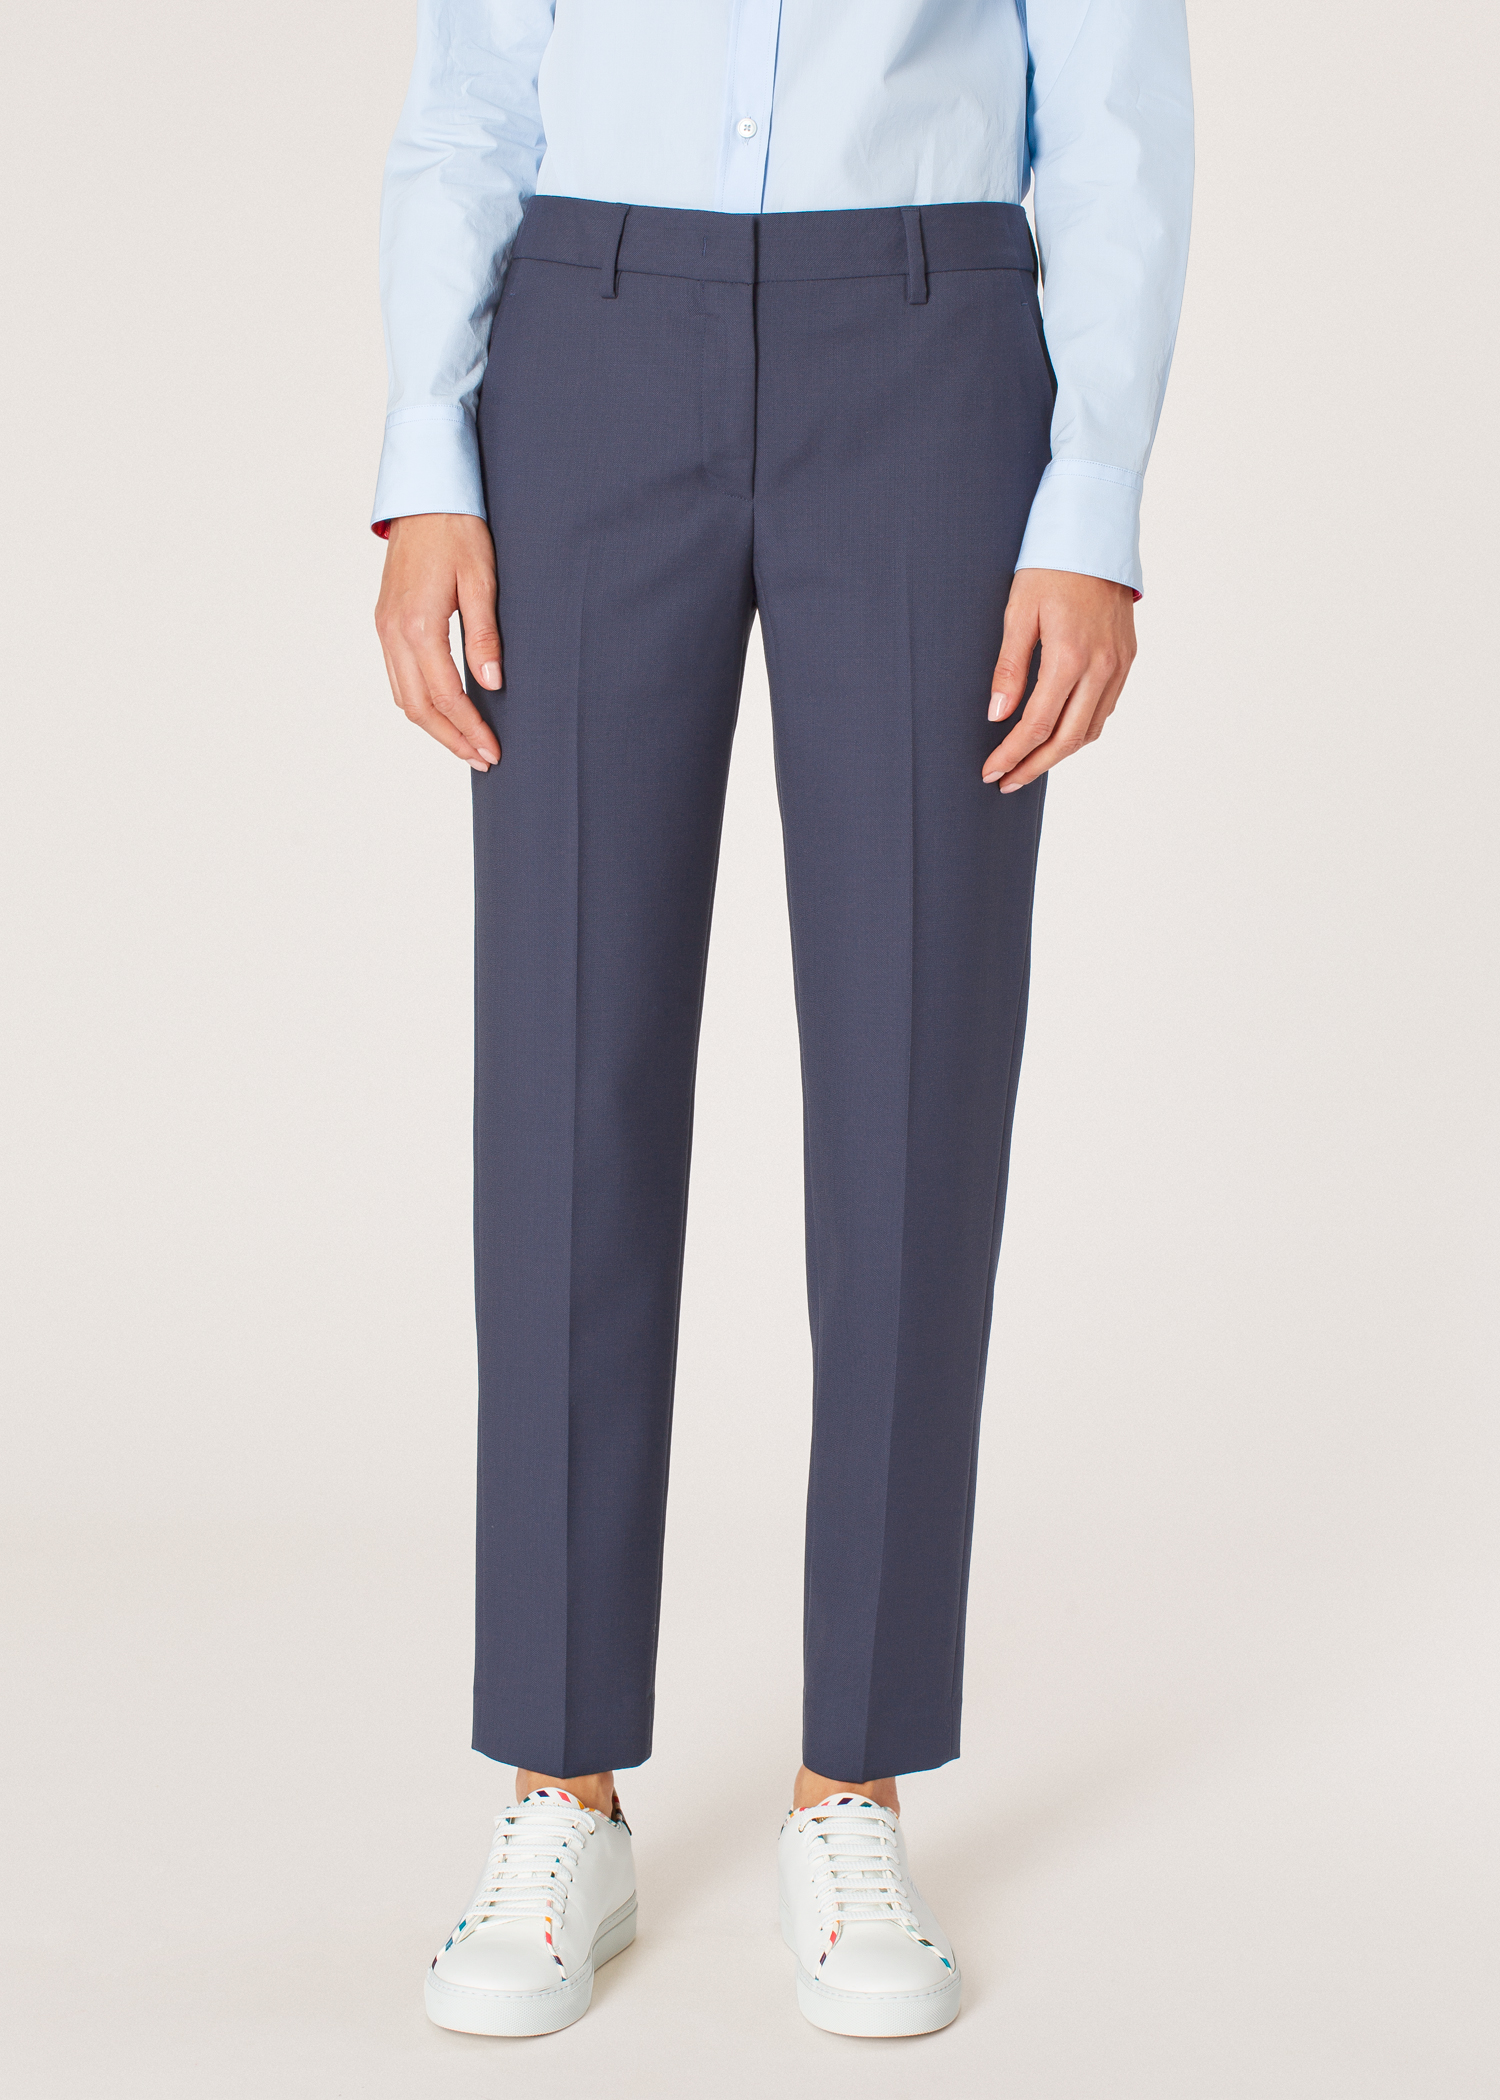 af49feae9ea7 Model front close up - A Suit To Travel In - Women's Classic-Fit Slate